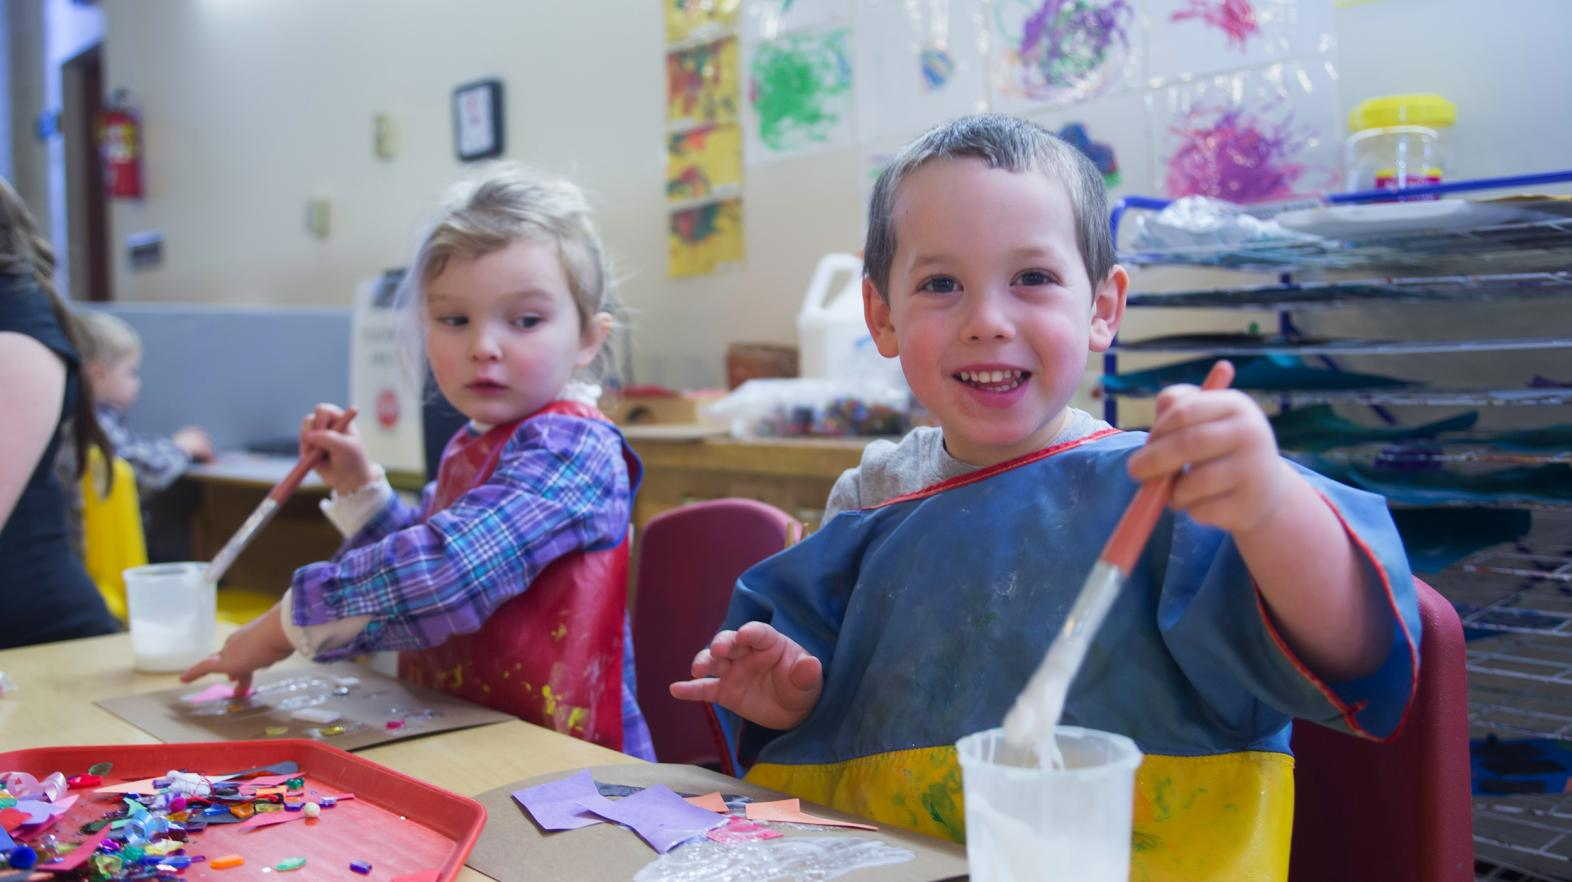 Happy kids doing crafts